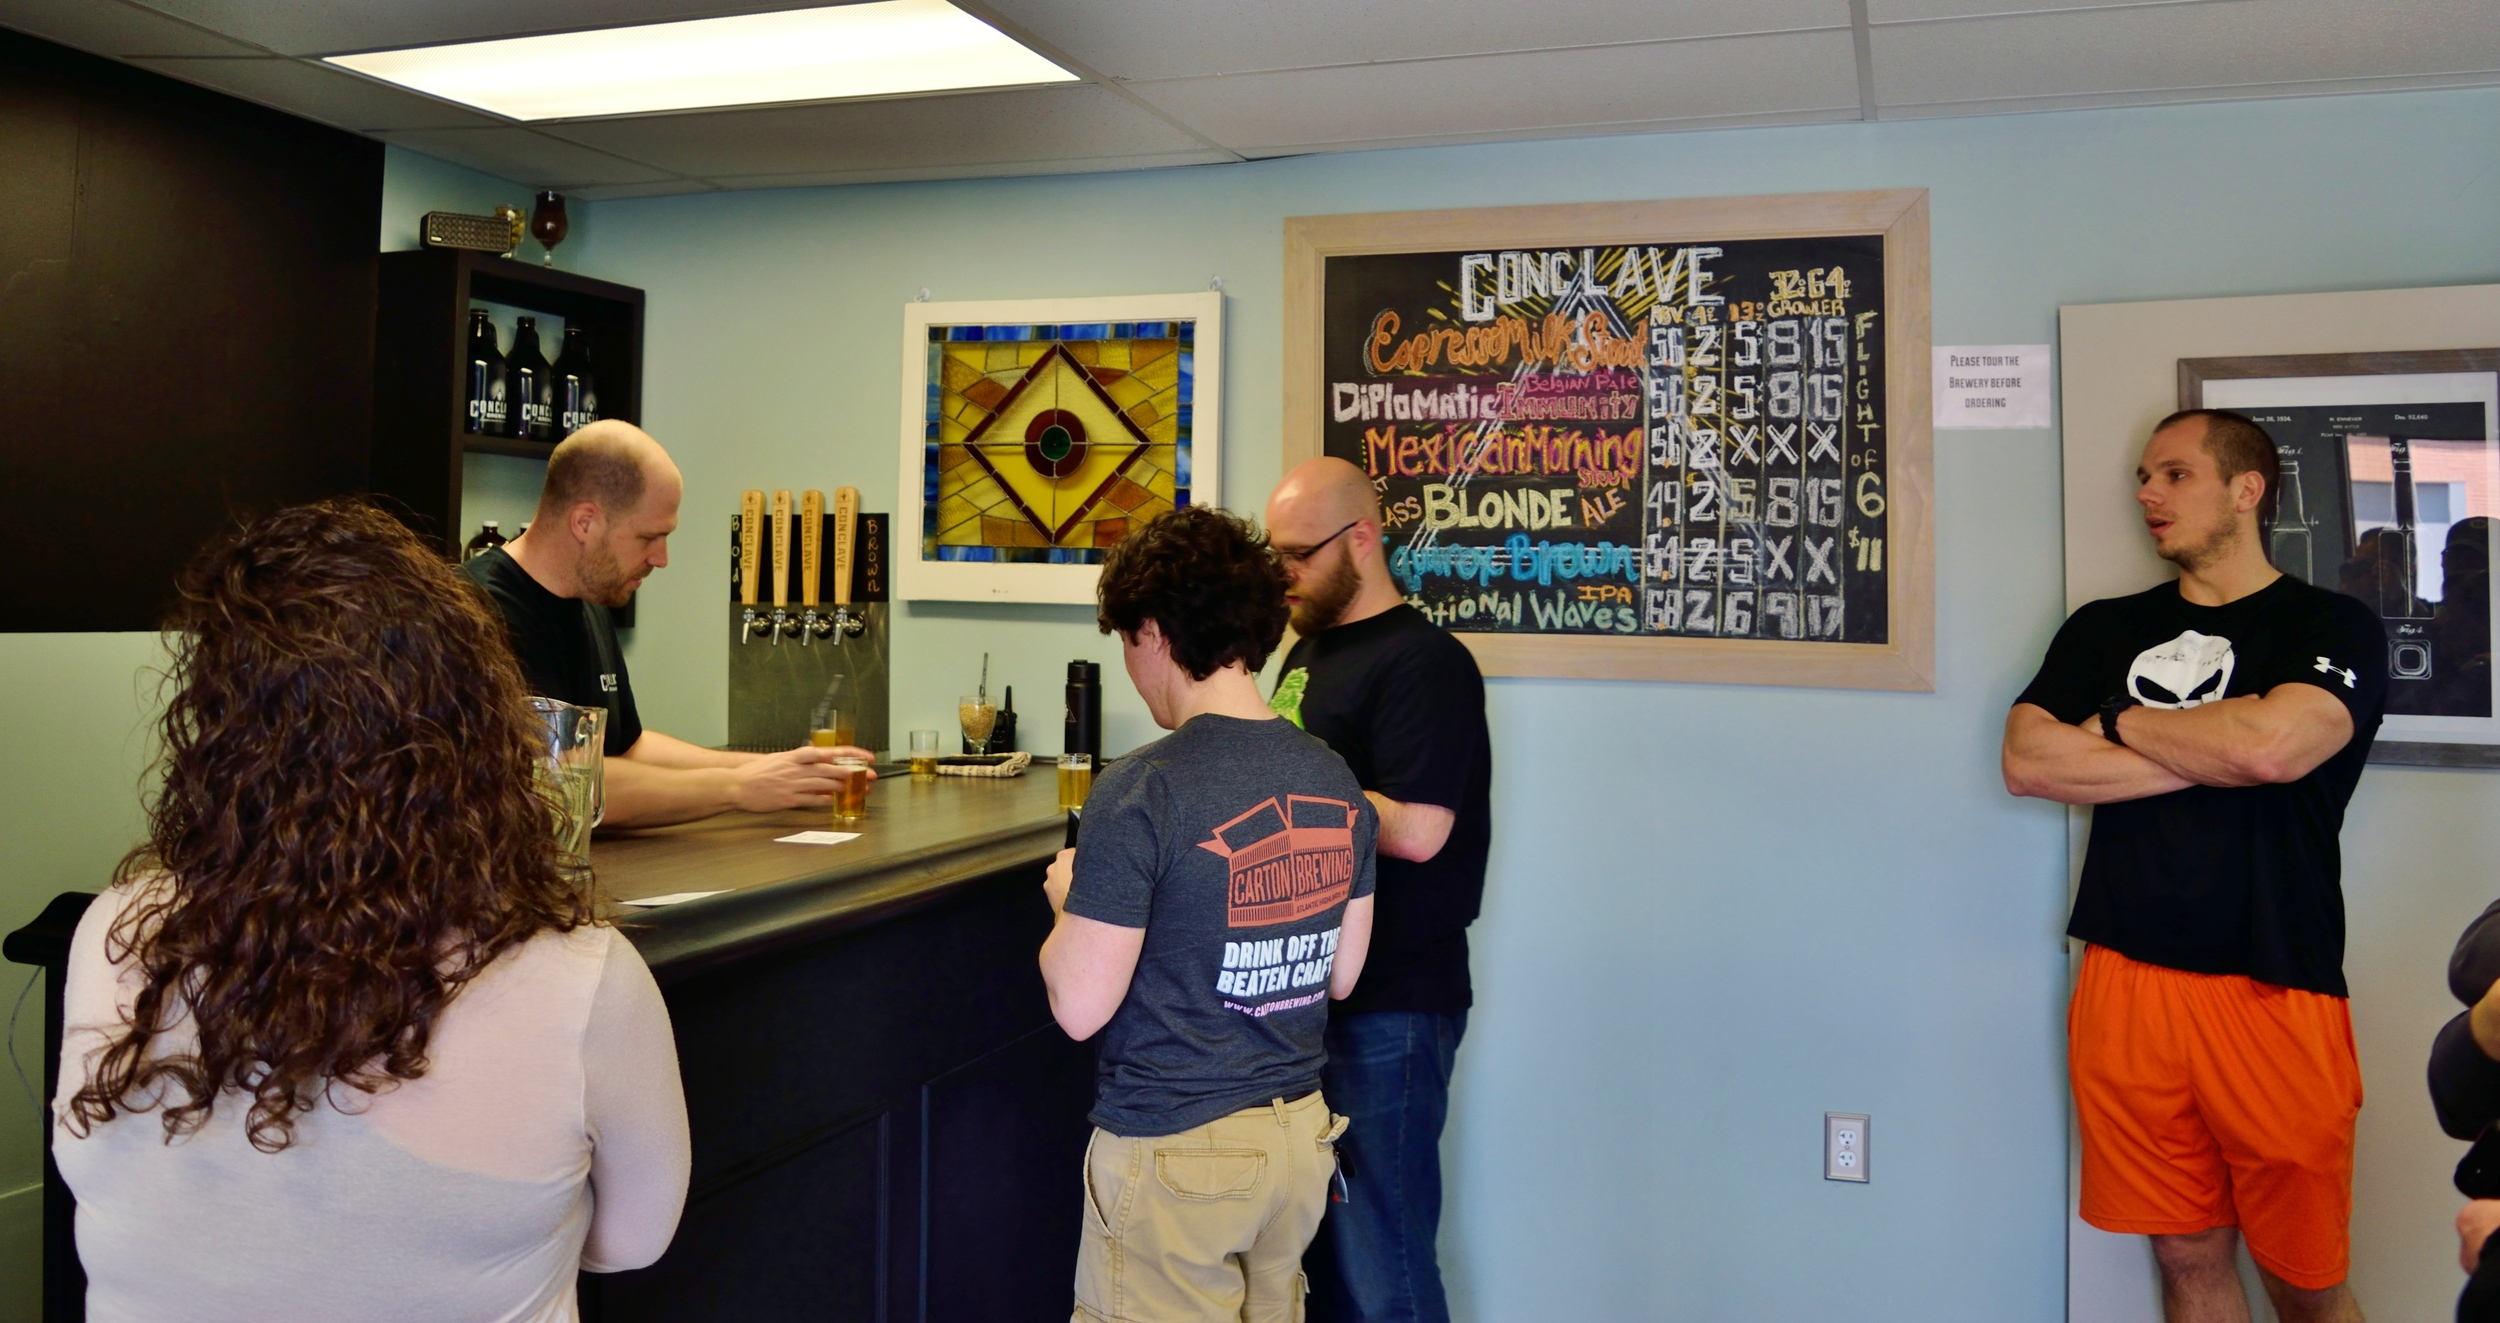 The taproom is small yet intimate offering an excellent opportunity to converse with others.